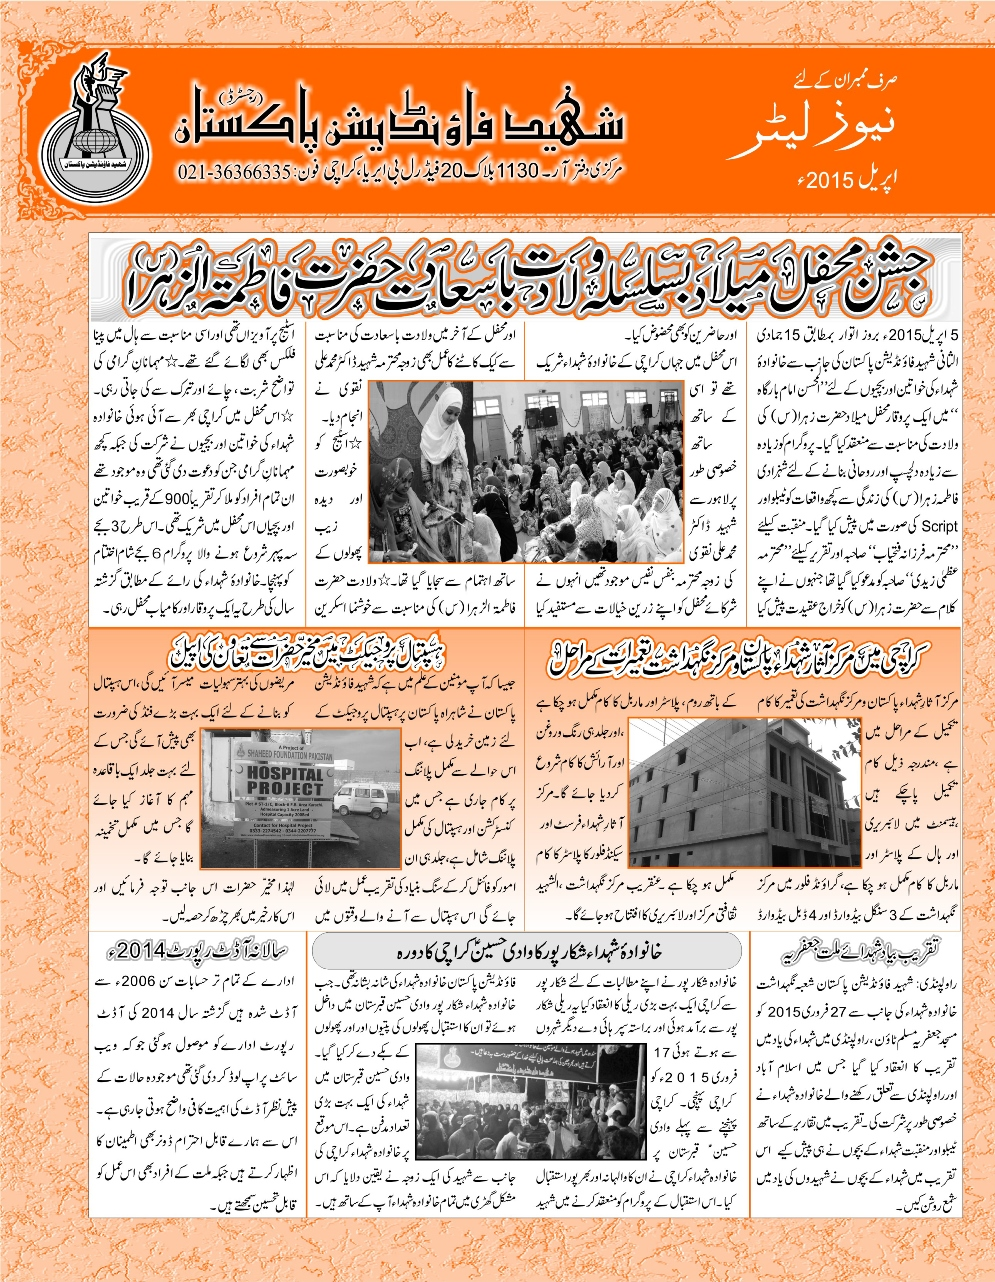 Al-Shaheed News Letter April 2015